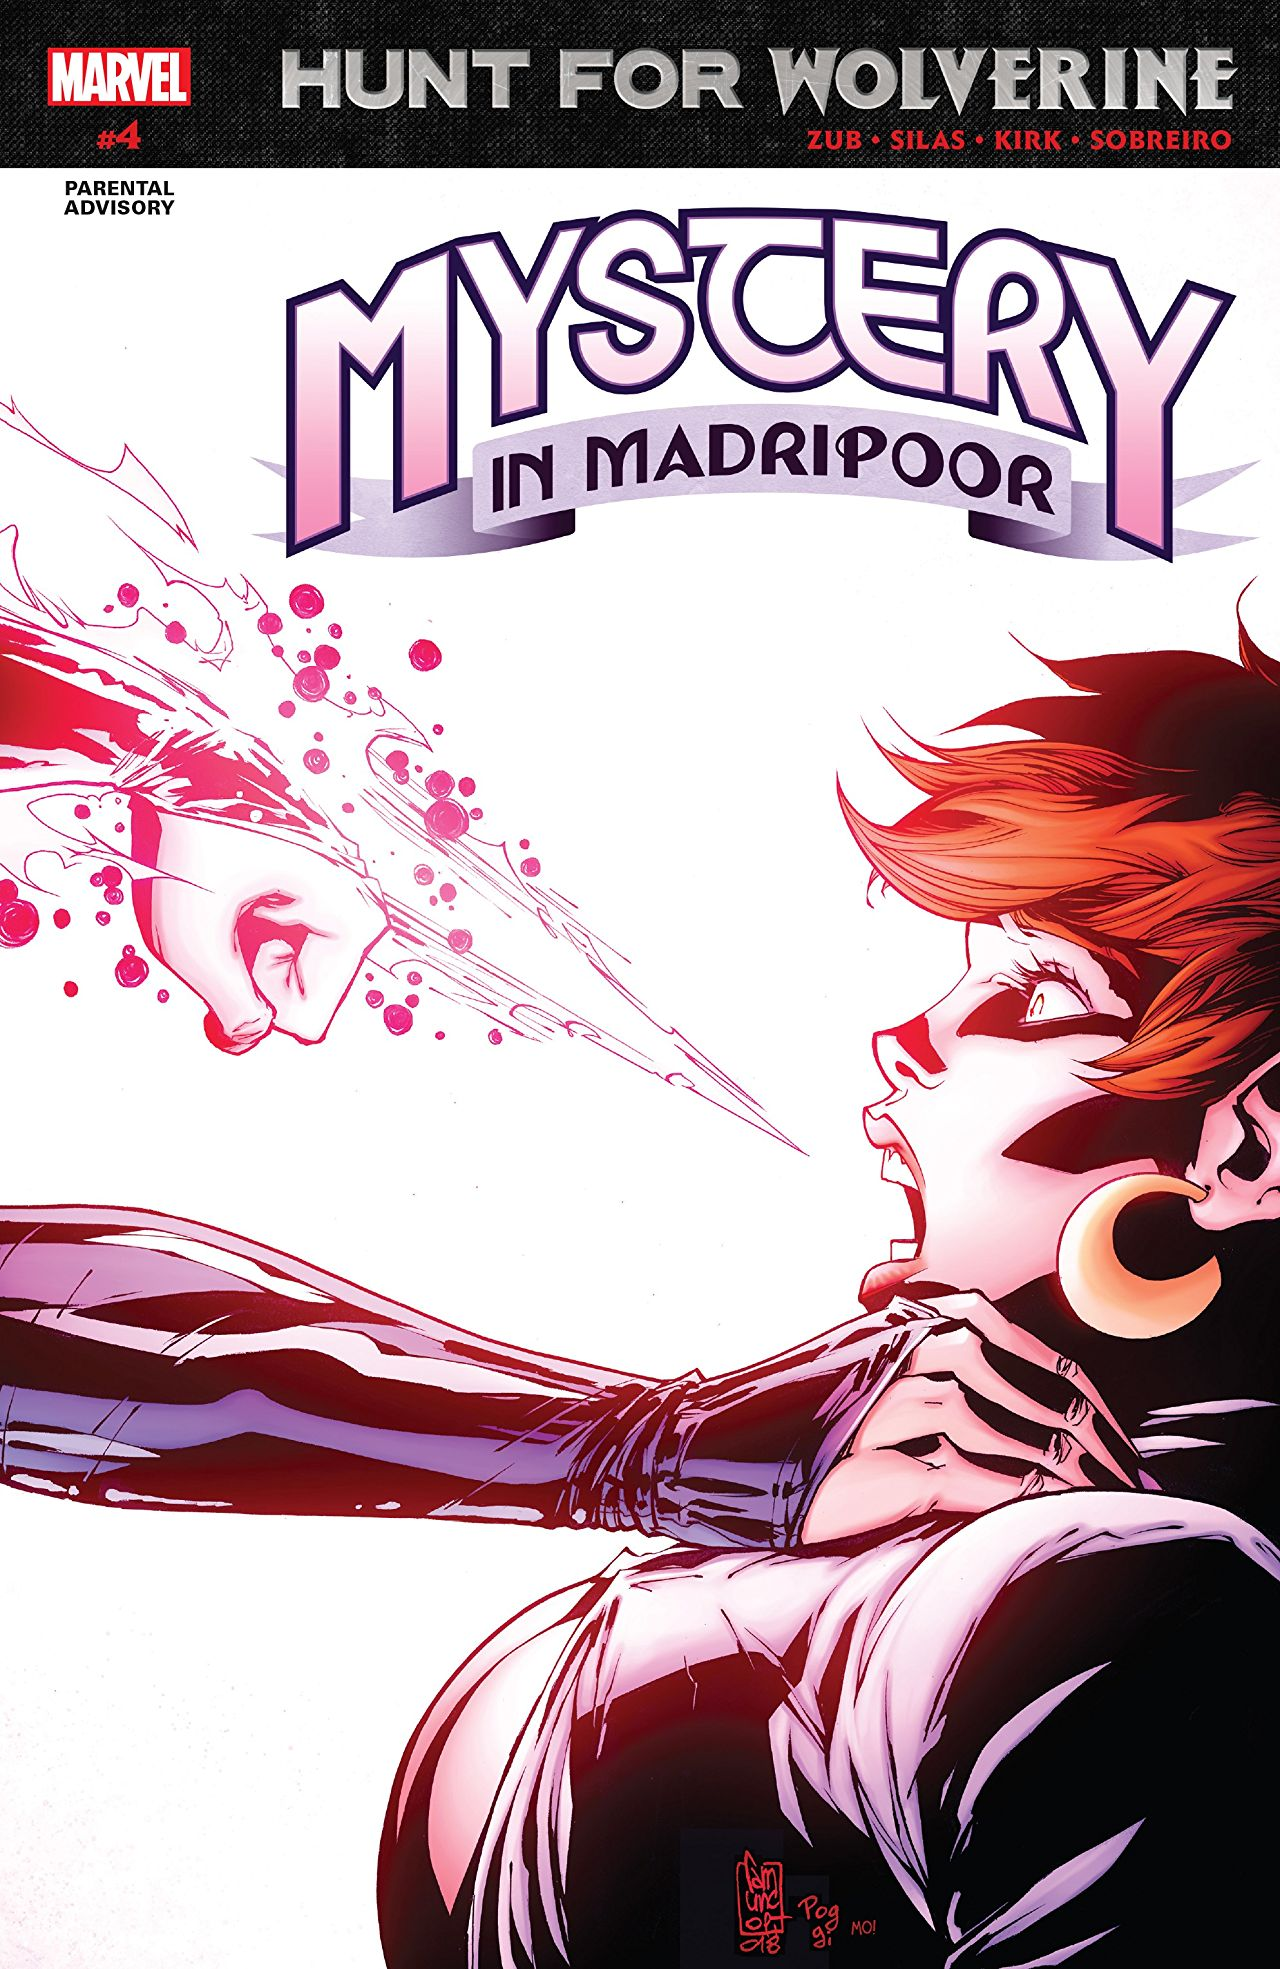 Hunt for Wolverine - Mystery in Madripoor 4